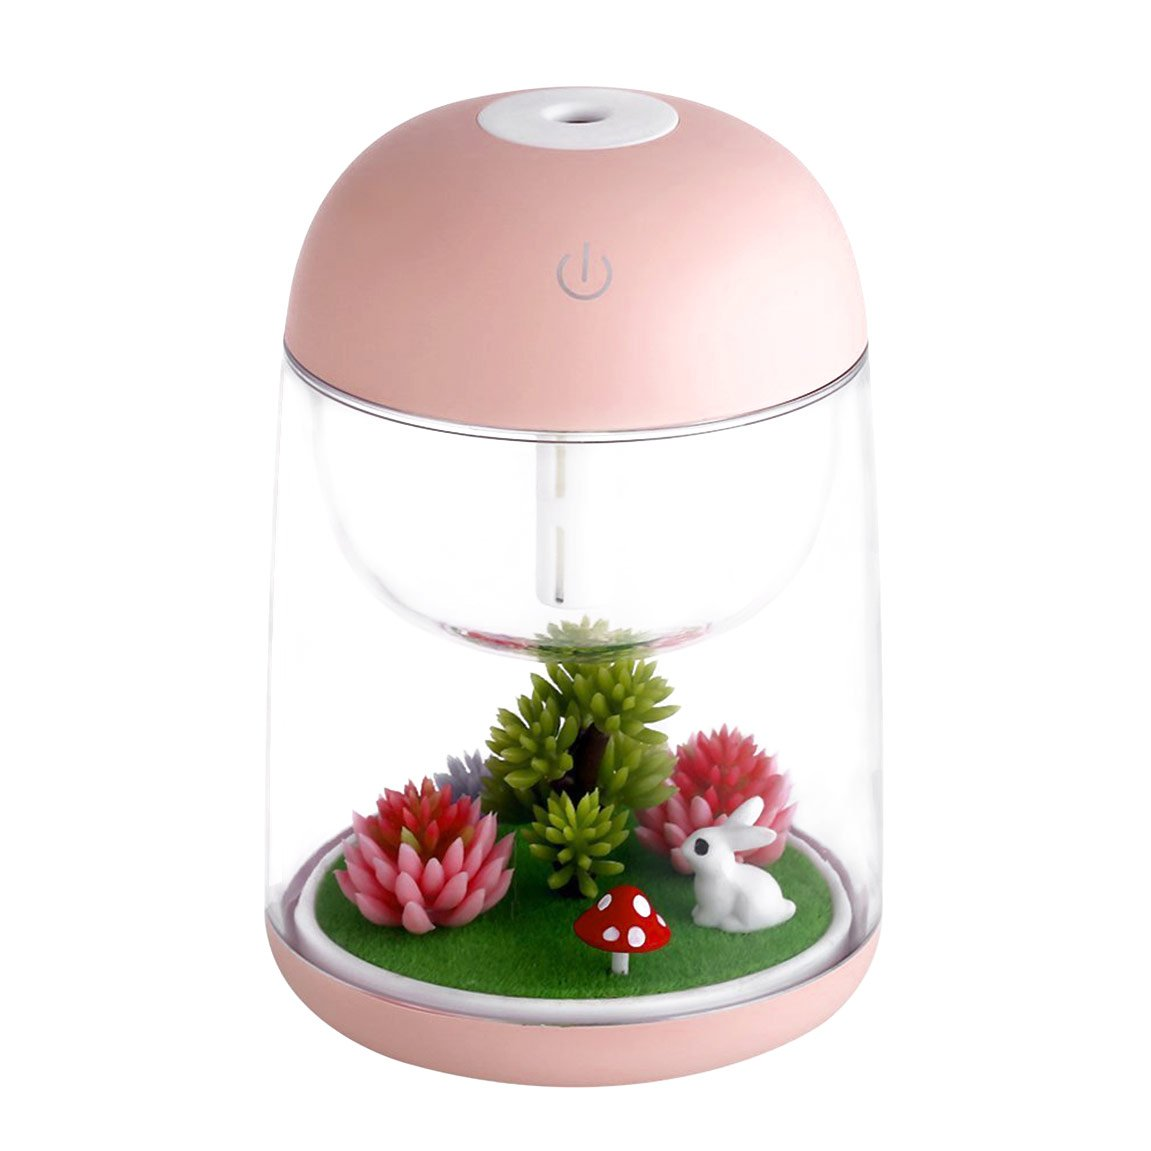 Micro Oil Diffuser Cool Mist Humidifier, House Room Mini Air Humidifiers for Baby Bedroom - Various Night Lights (Pink)